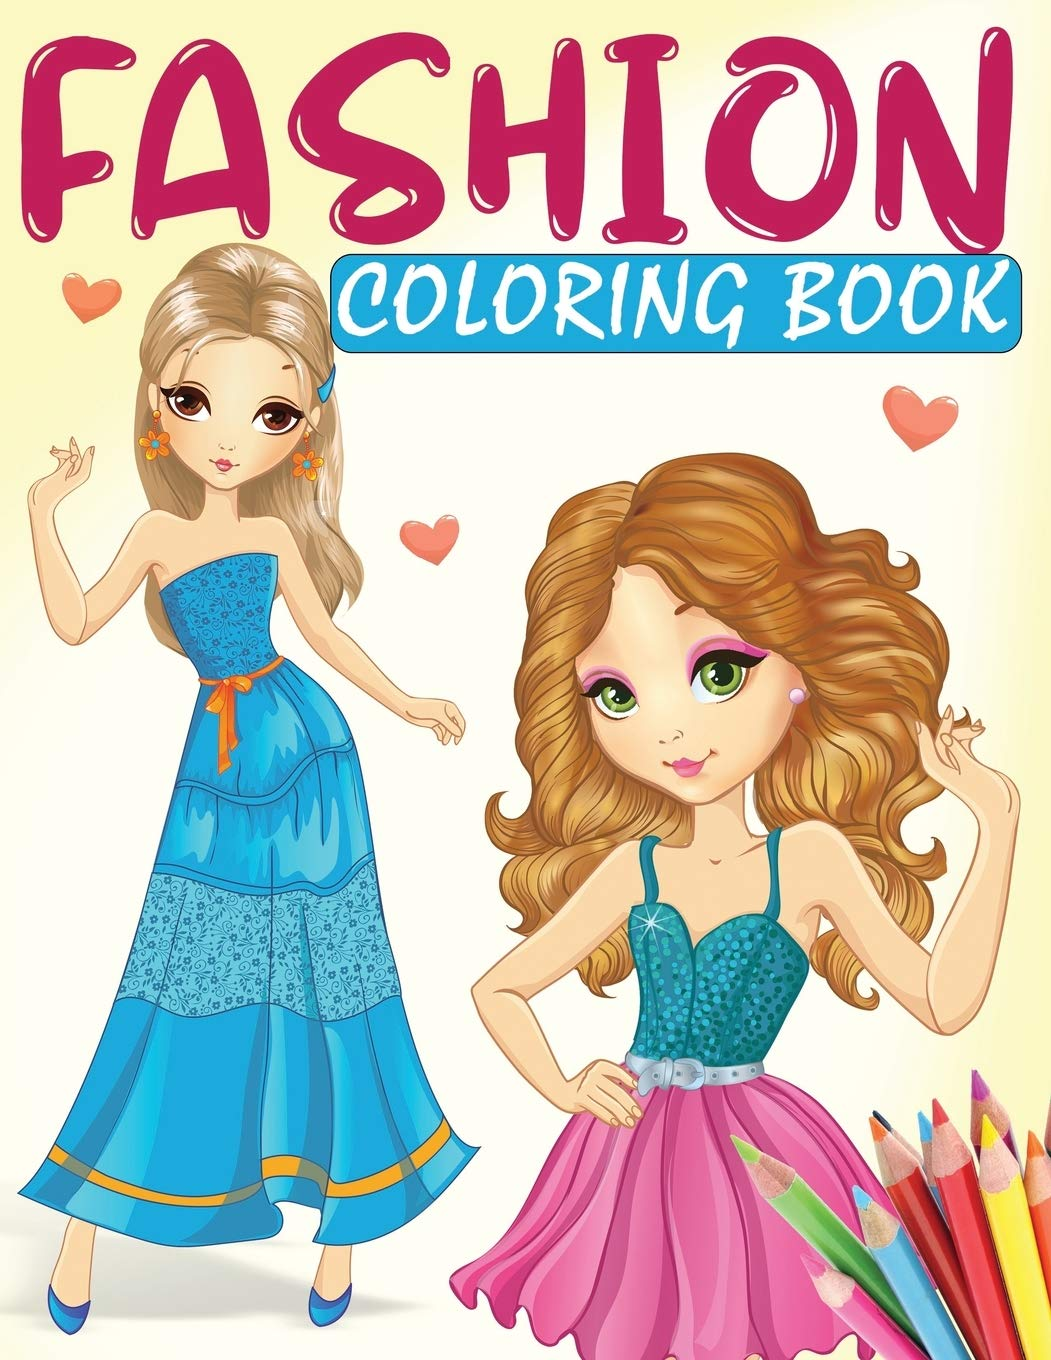 Fashion Coloring Book A Fashion Coloring Book For Girls With 70 Fabulous Designs And Cute Girls In Adorable Outfits Kidd S Coloring Books Kidd Angela 9798642470091 Amazon Com Books